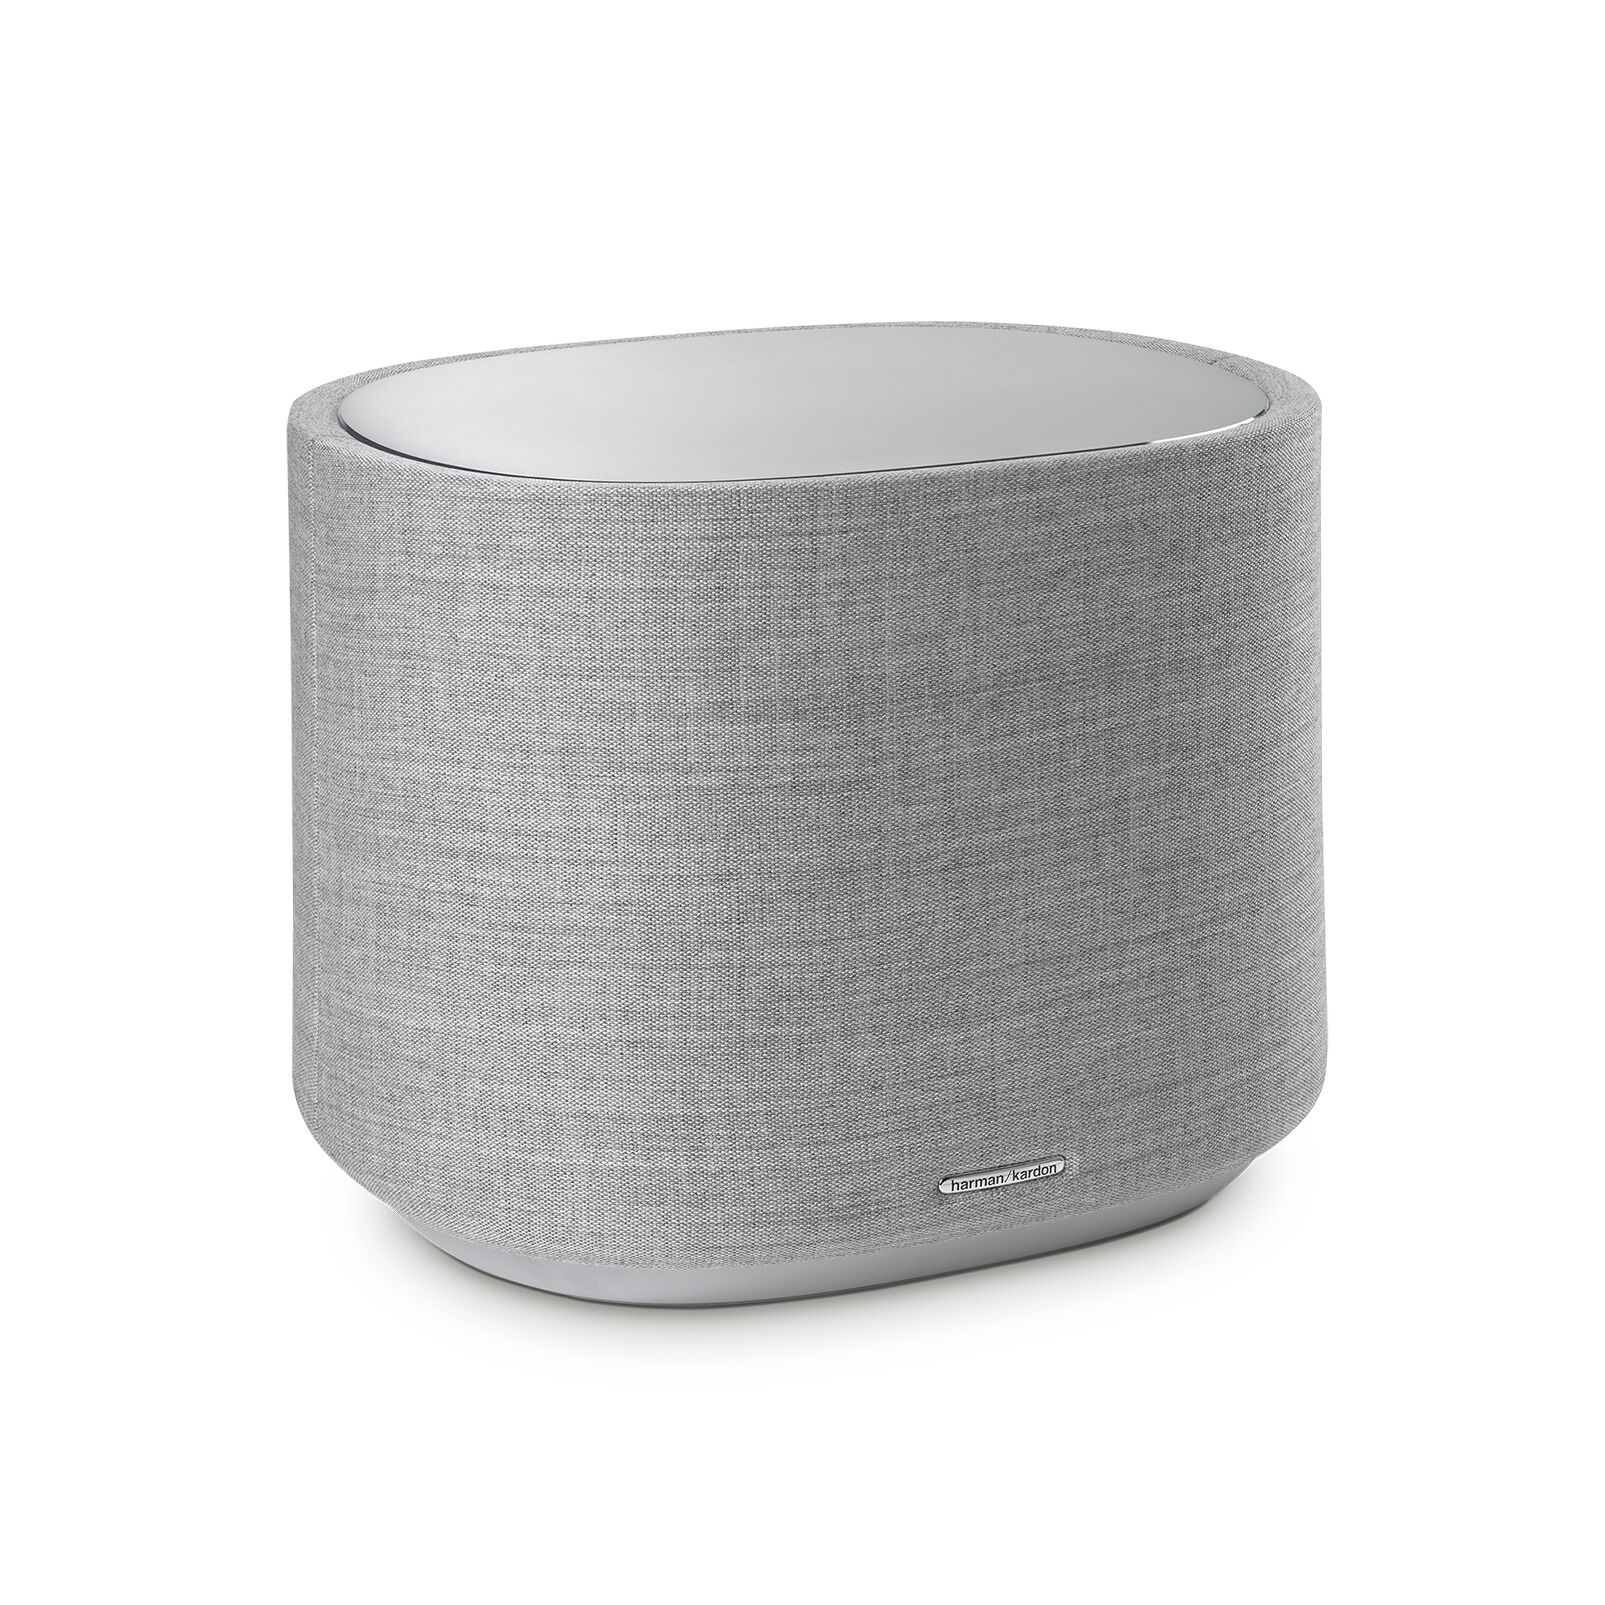 Harman Kardon Citation Sub Grey